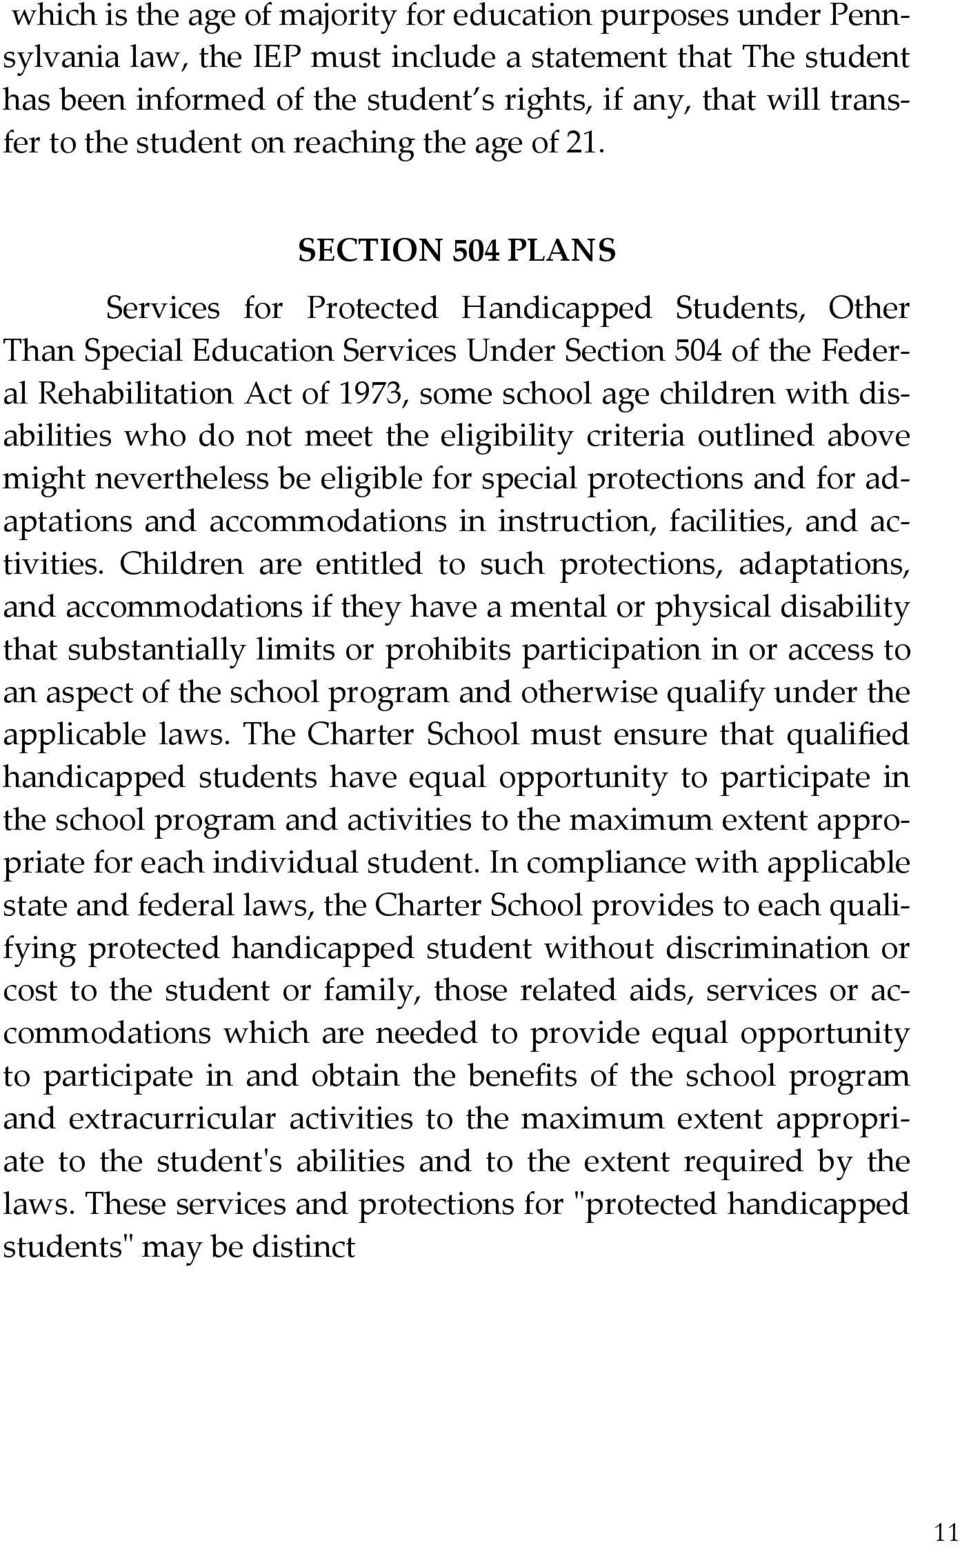 SECTION 504 PLANS Services for Protected Handicapped Students, Other Than Special Education Services Under Section 504 of the Federal Rehabilitation Act of 1973, some school age children with